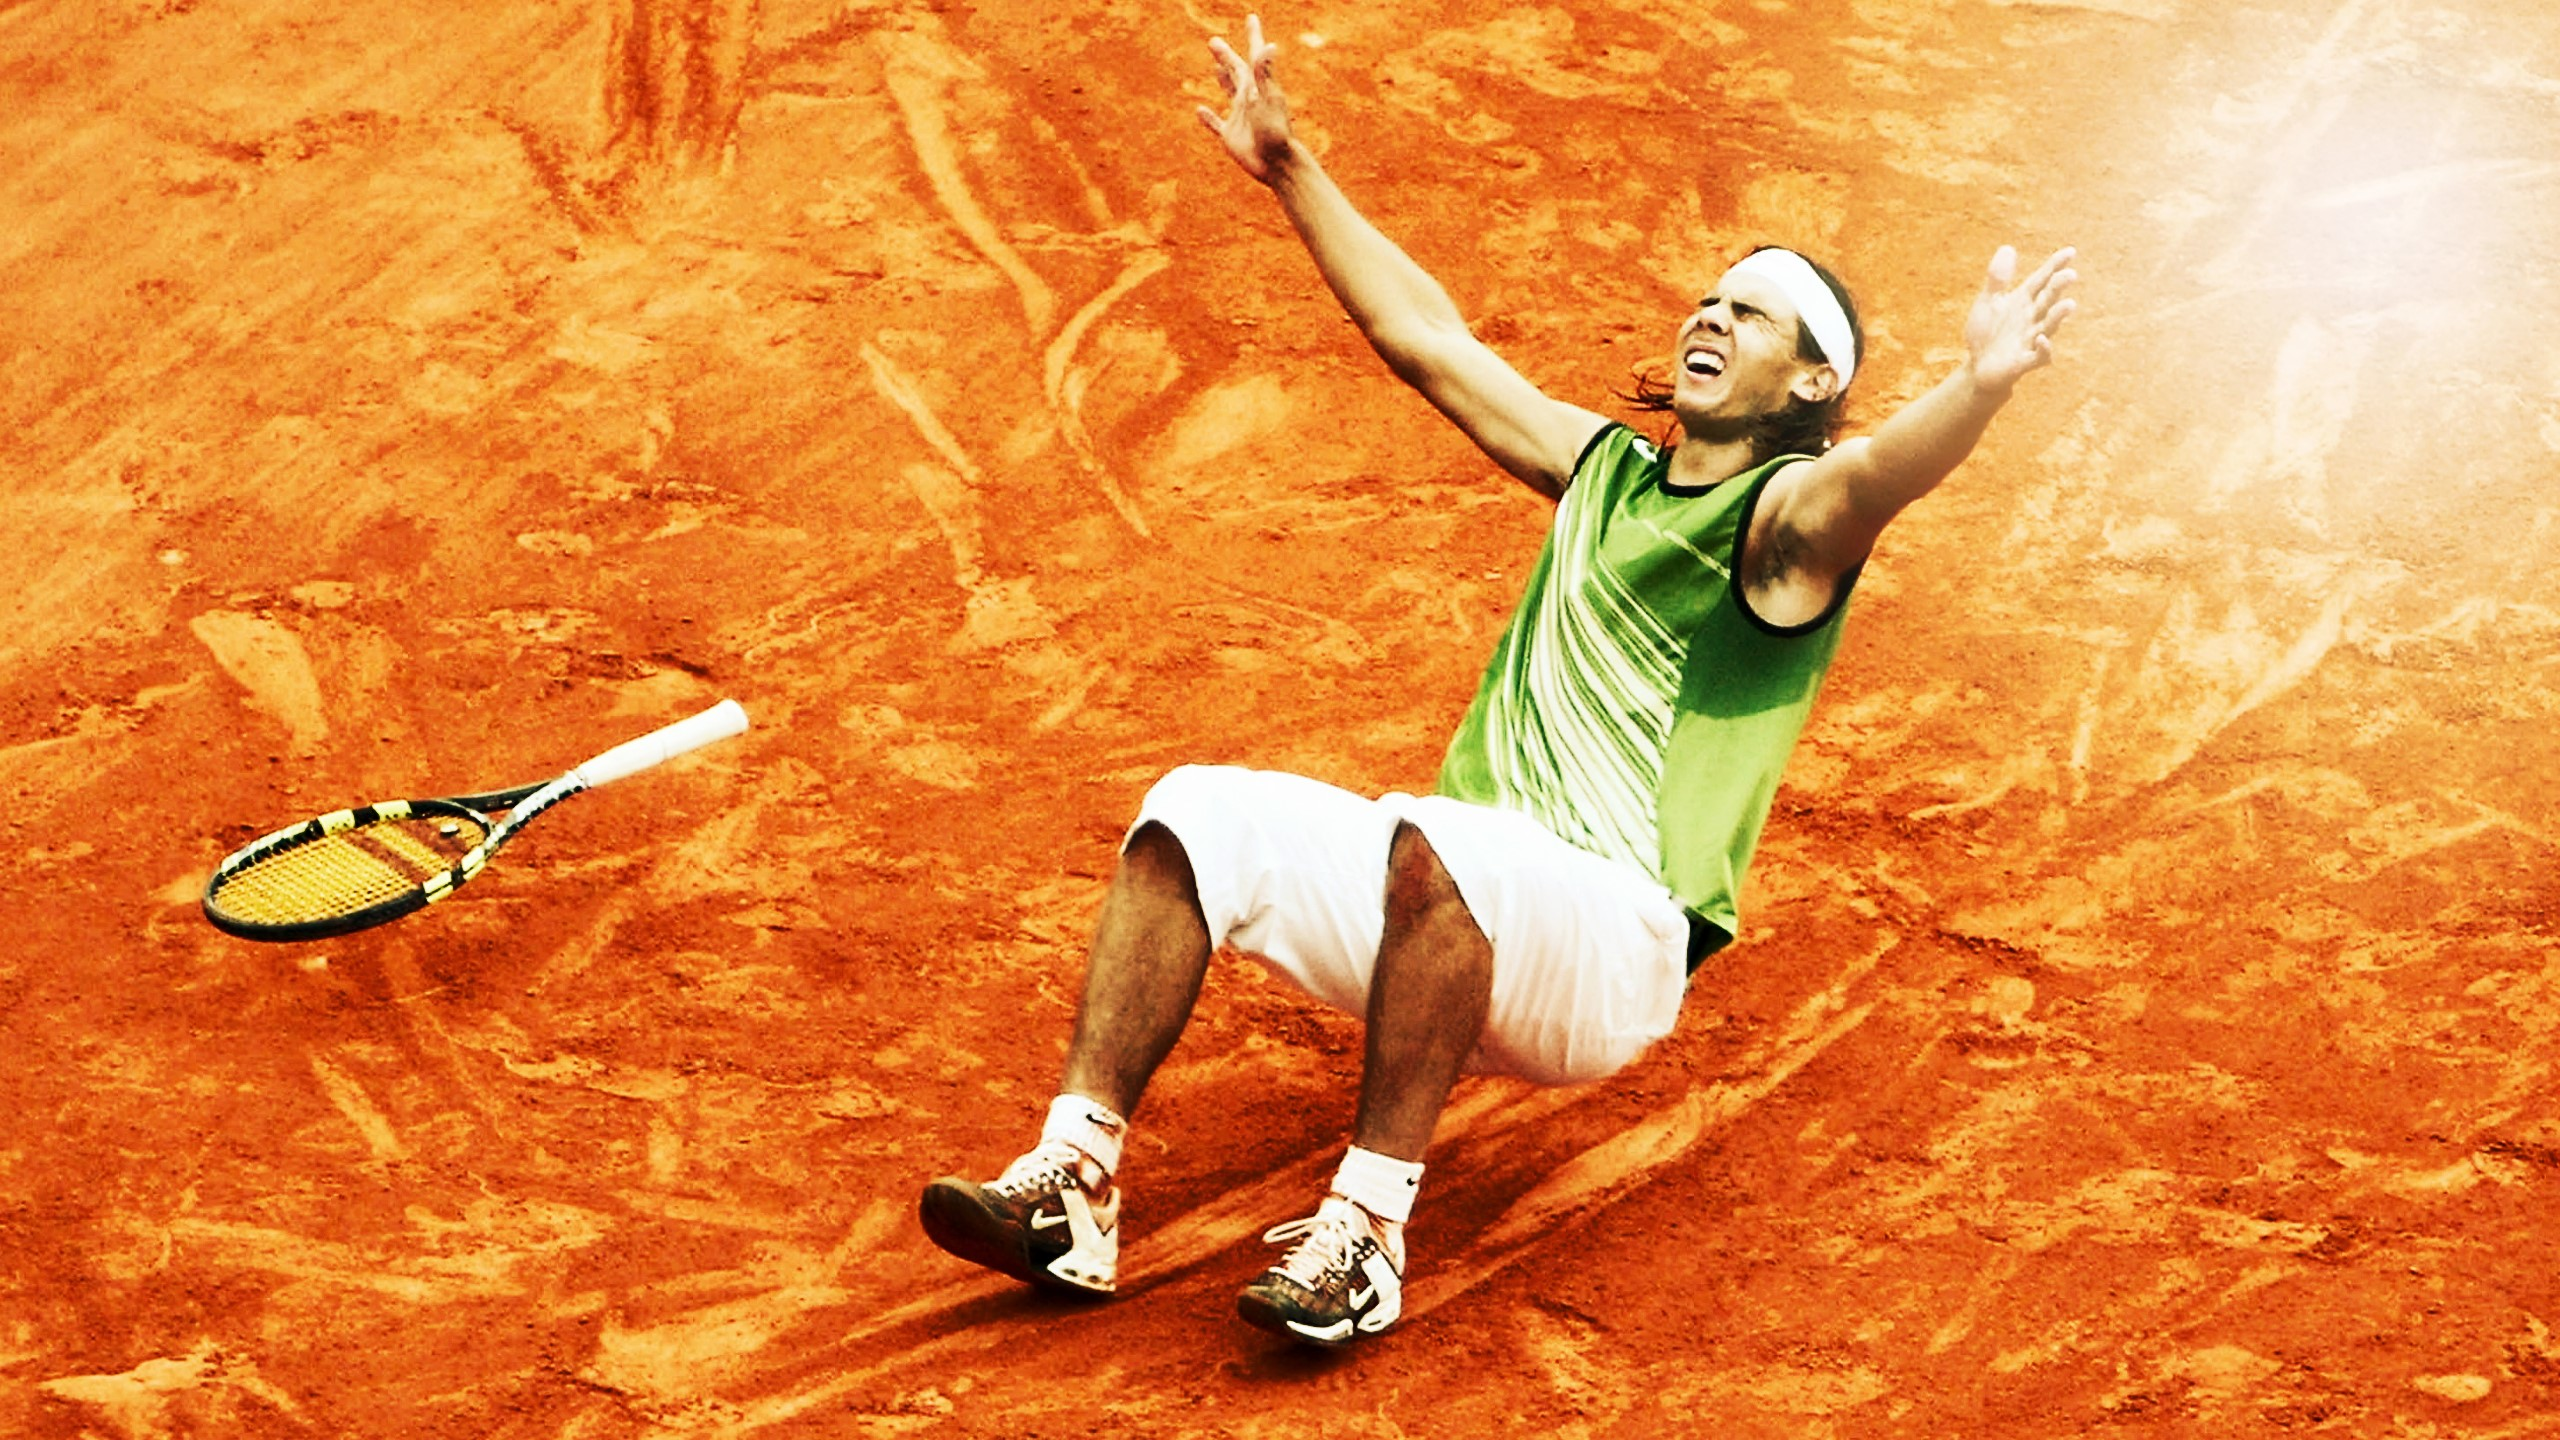 June 5, 2005: At 19 years and two days Nadal wins Roland Garros